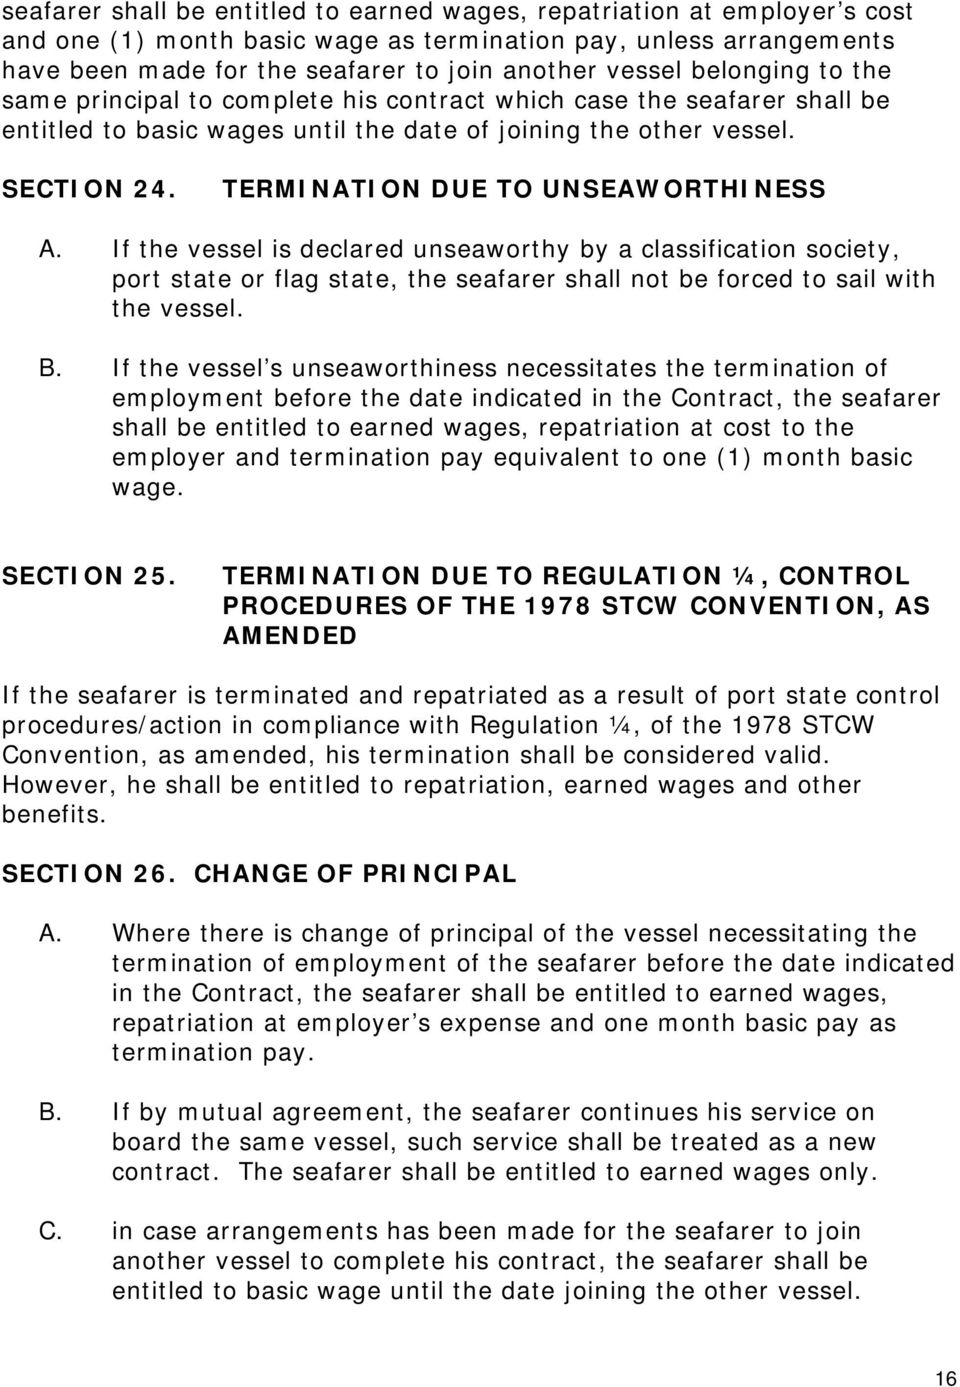 TERMINATION DUE TO UNSEAWORTHINESS A. If the vessel is declared unseaworthy by a classification society, port state or flag state, the seafarer shall not be forced to sail with the vessel. B.